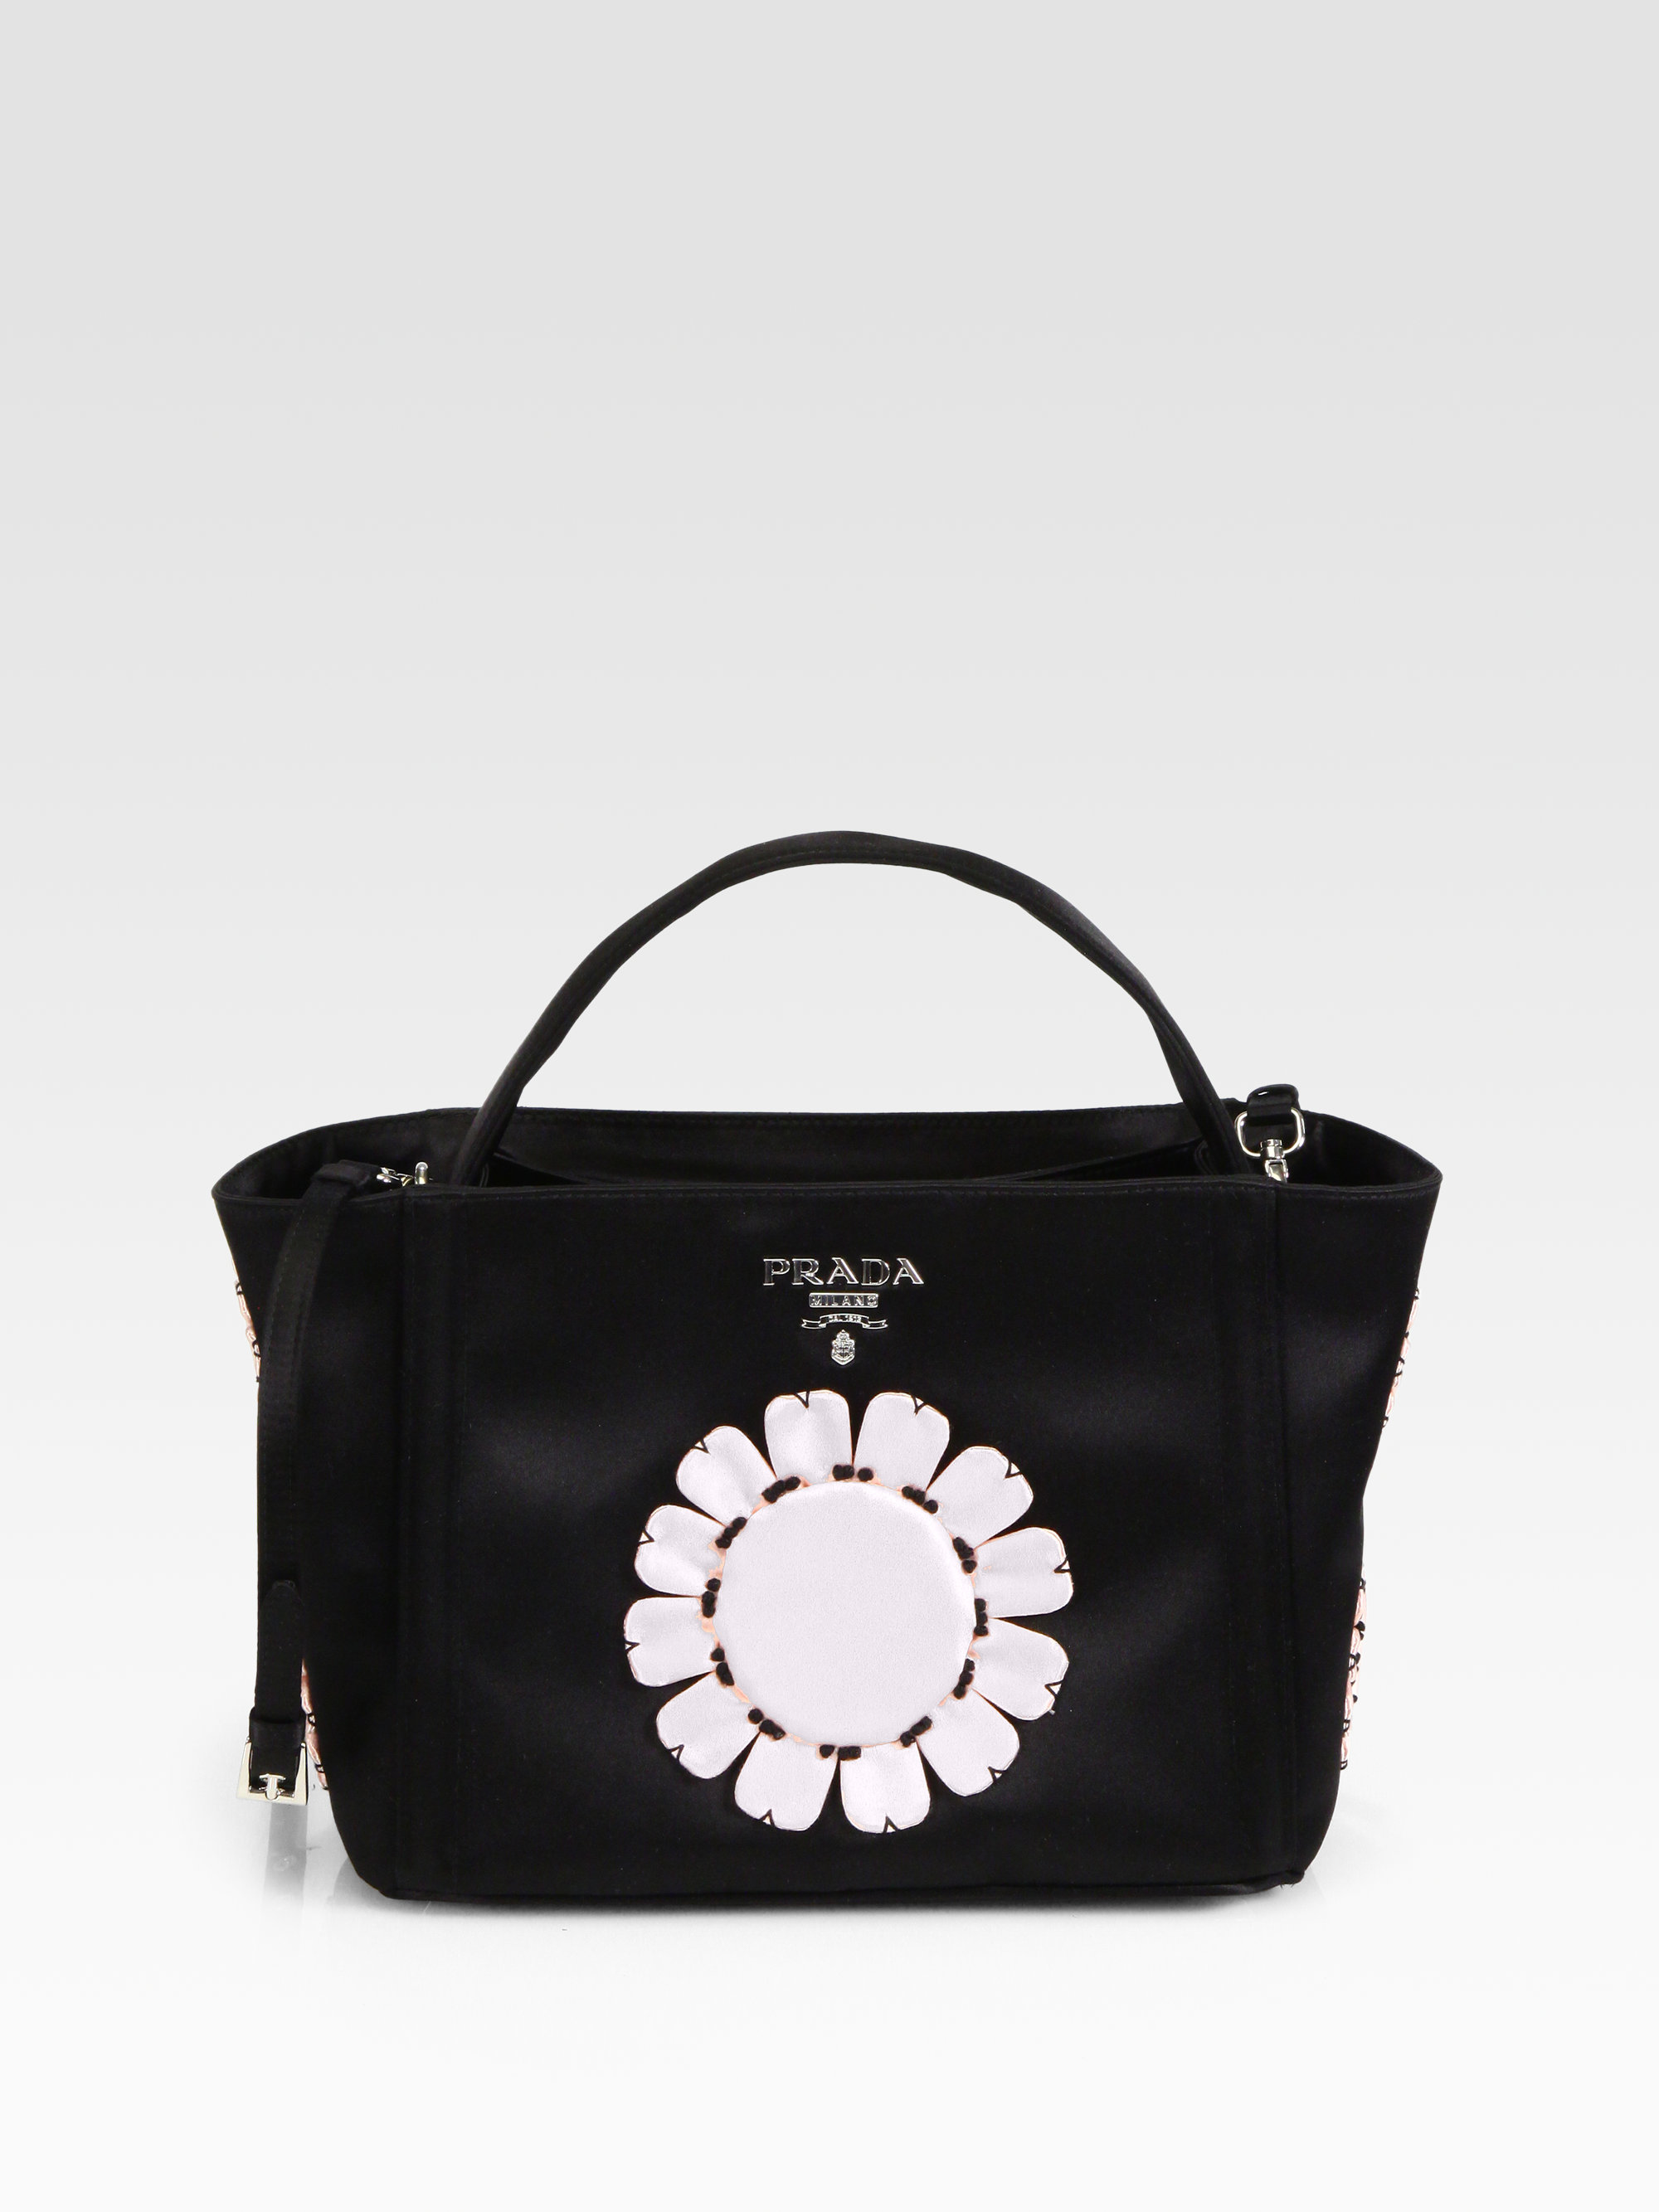 prada suede purse - Prada Raso Flower Satin Basket Bag in Black (black pink) | Lyst